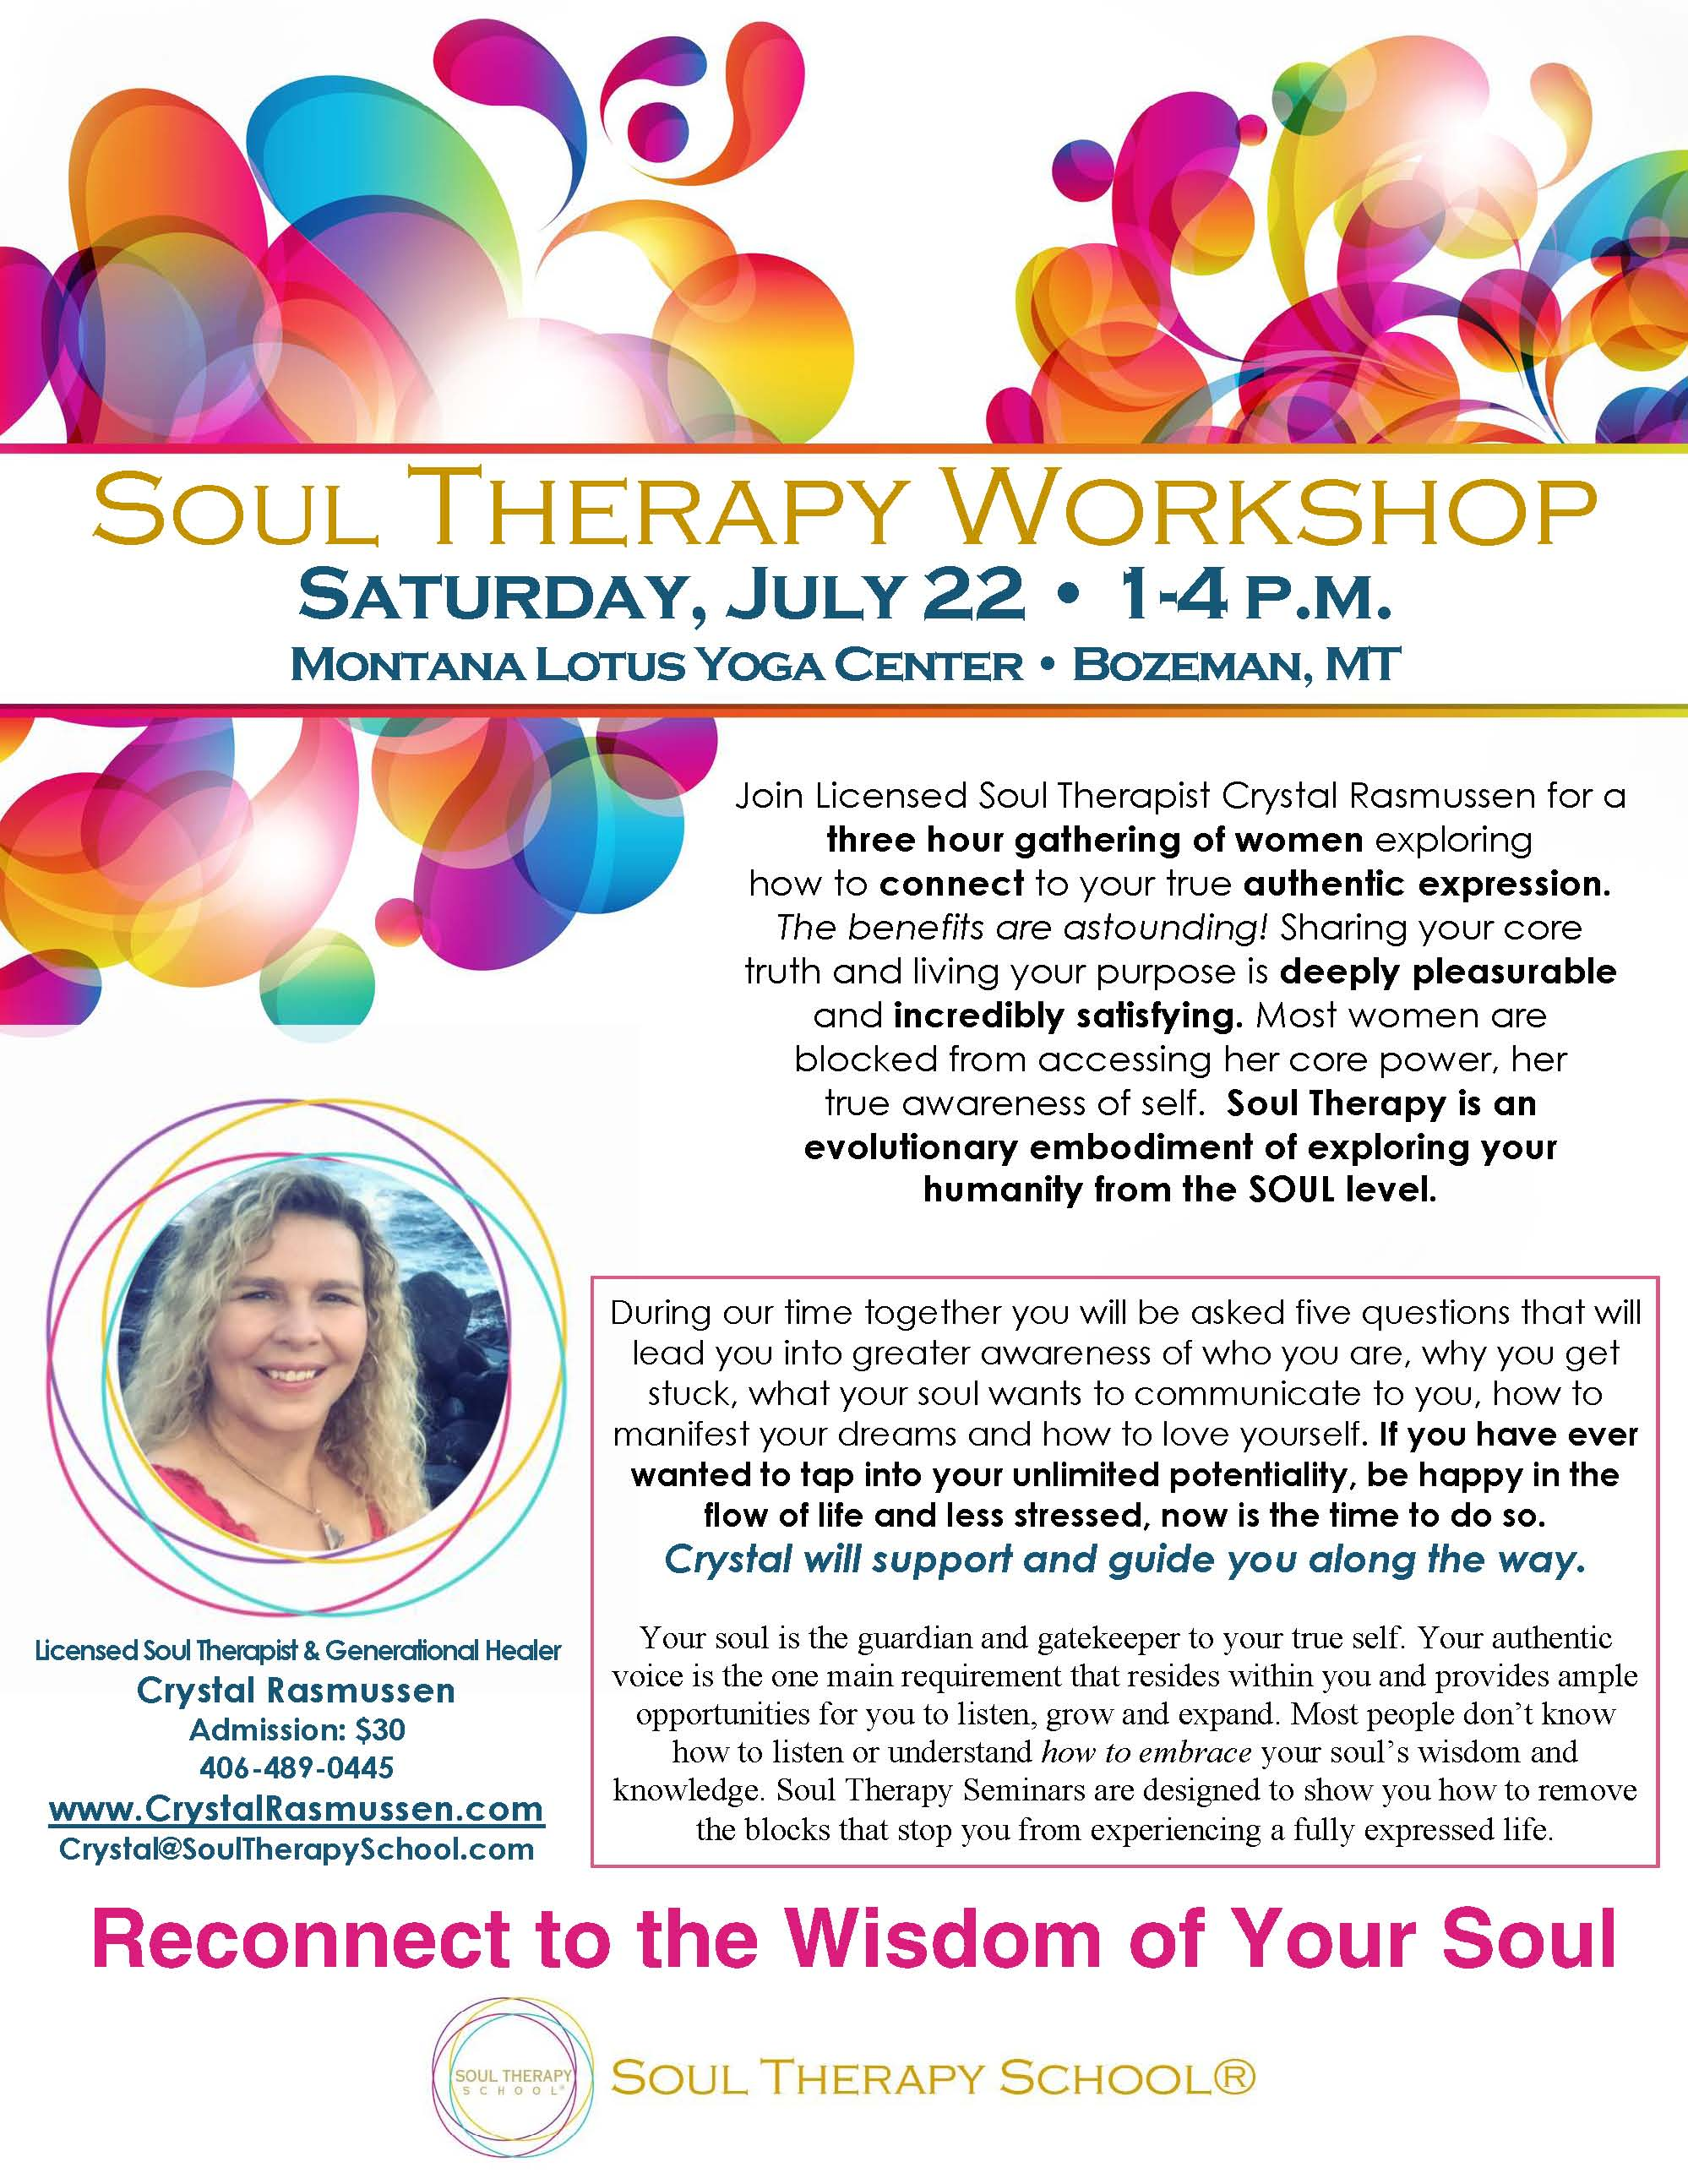 Soul Therapy Workshop Bozeman.jpg